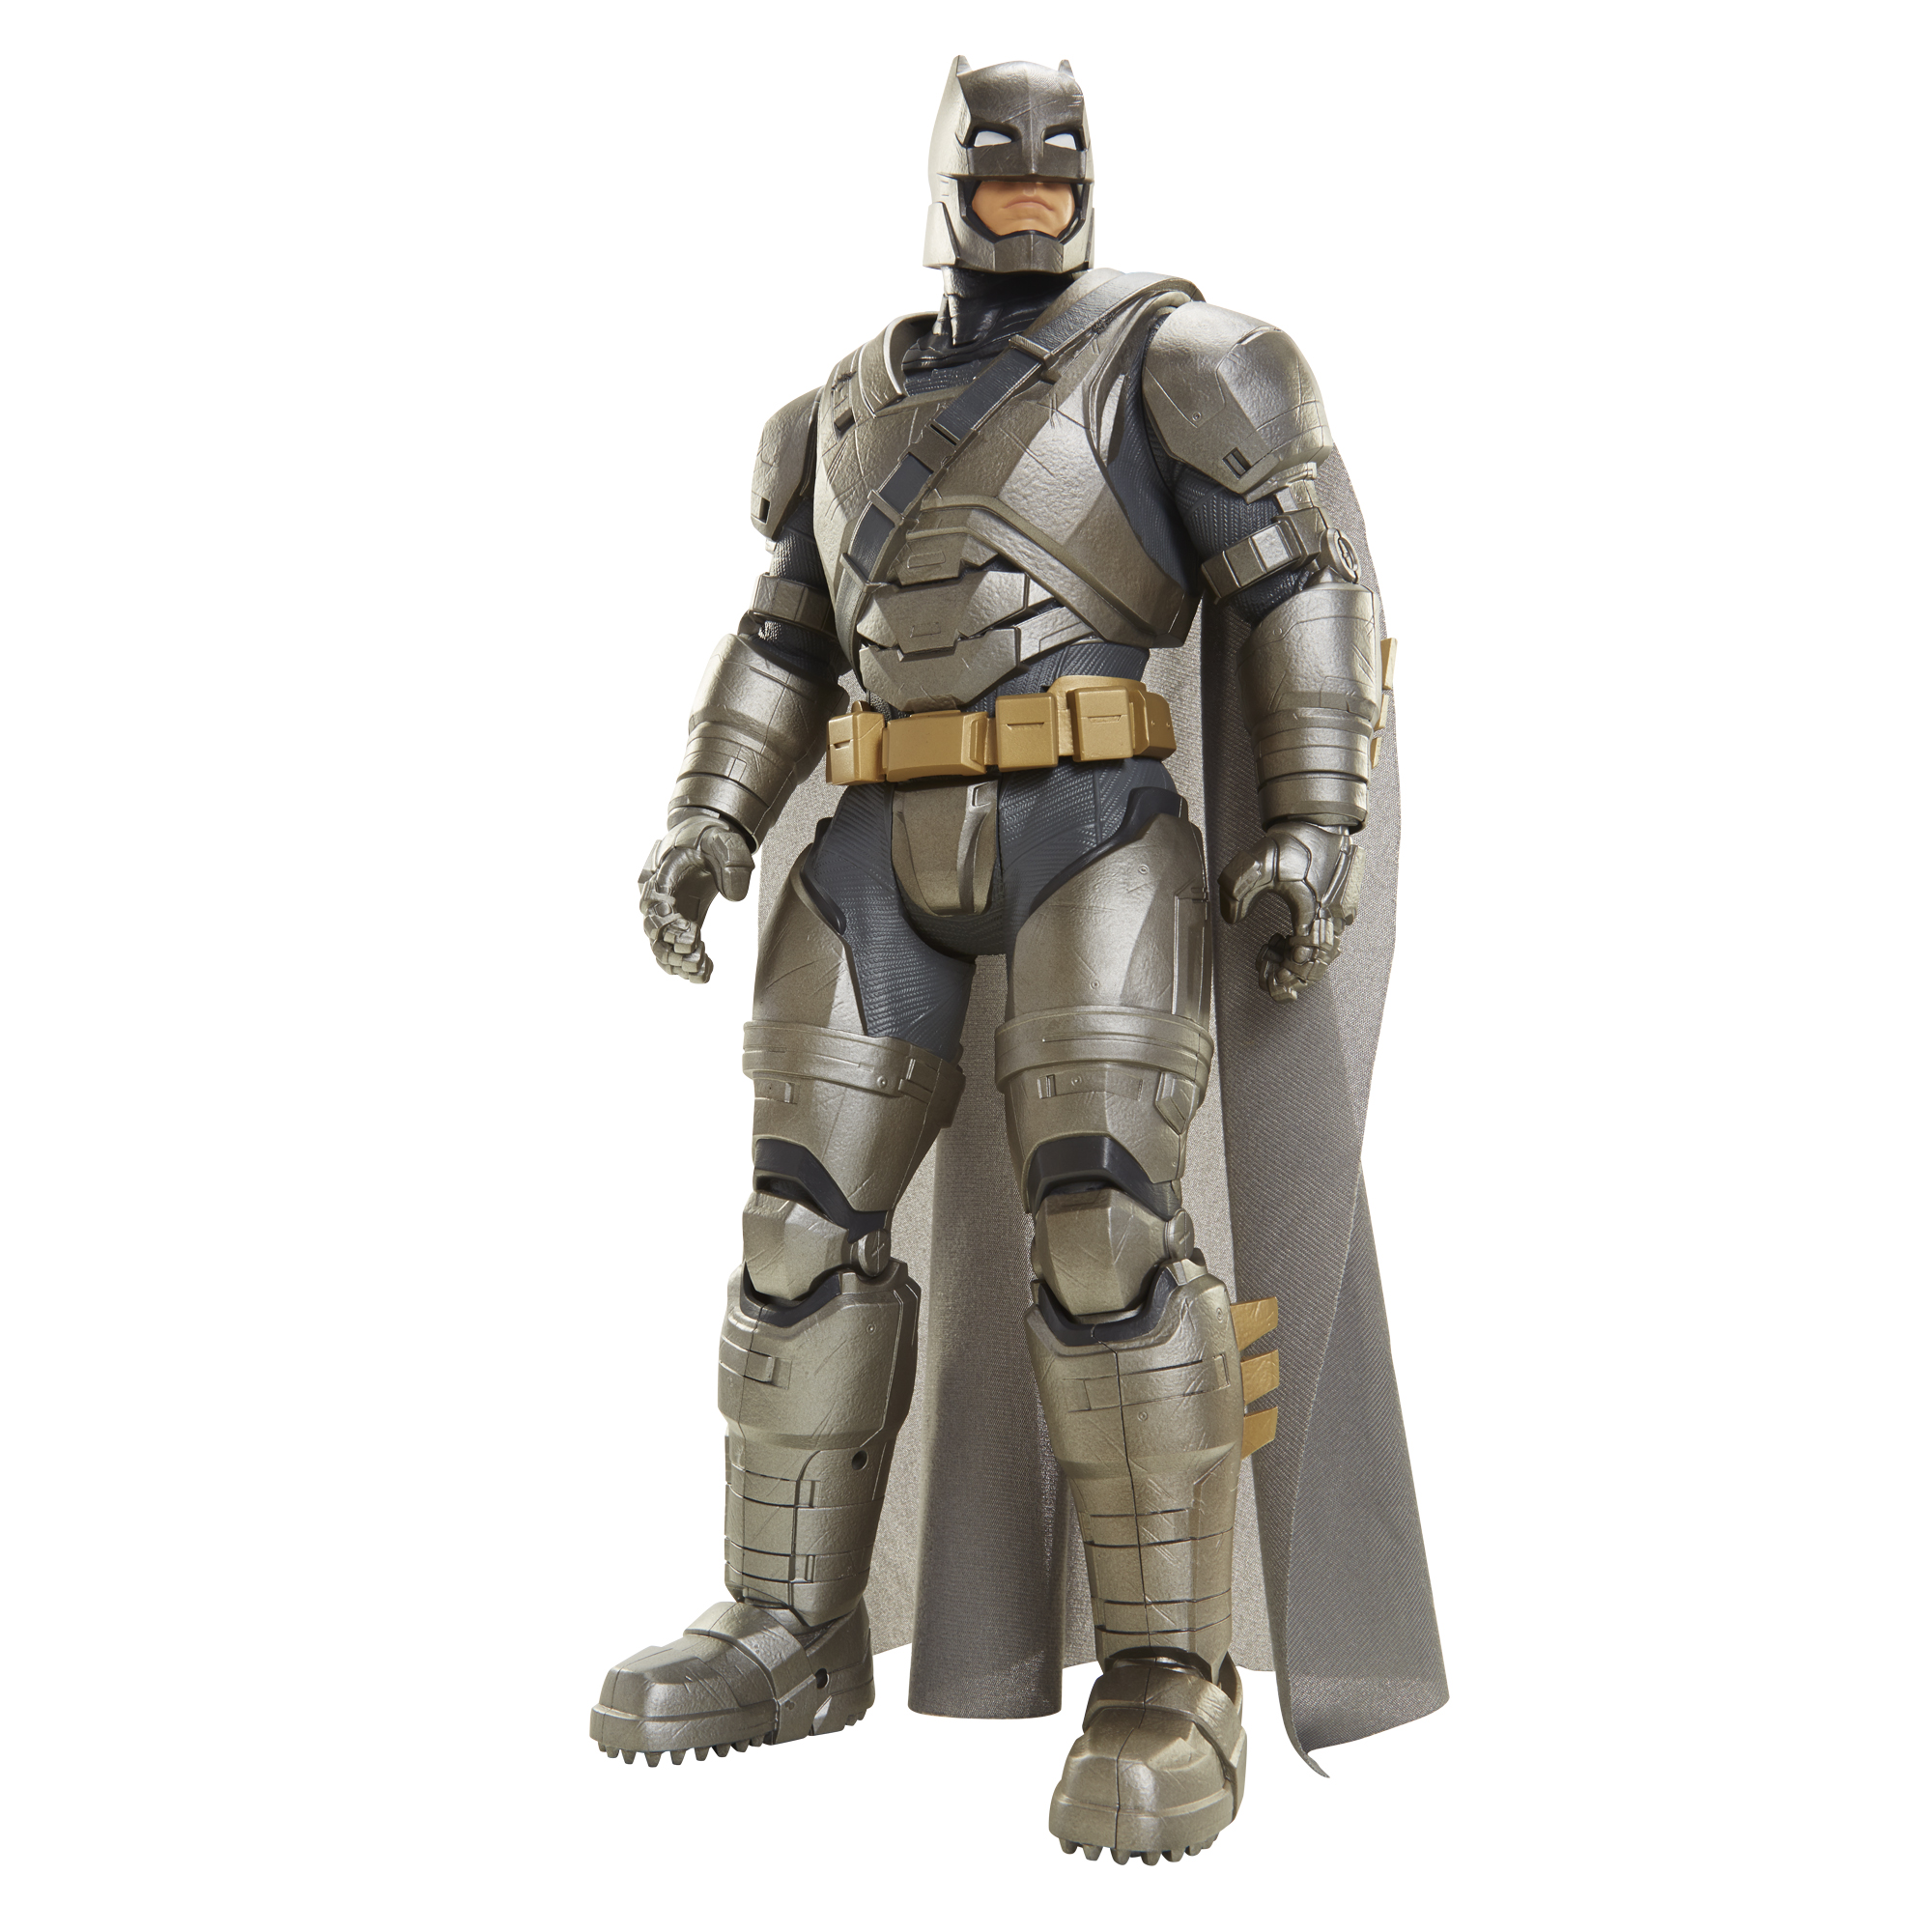 Batman Vs Superman Mech Suit Batman 20 Inch Figure  Gamesplus